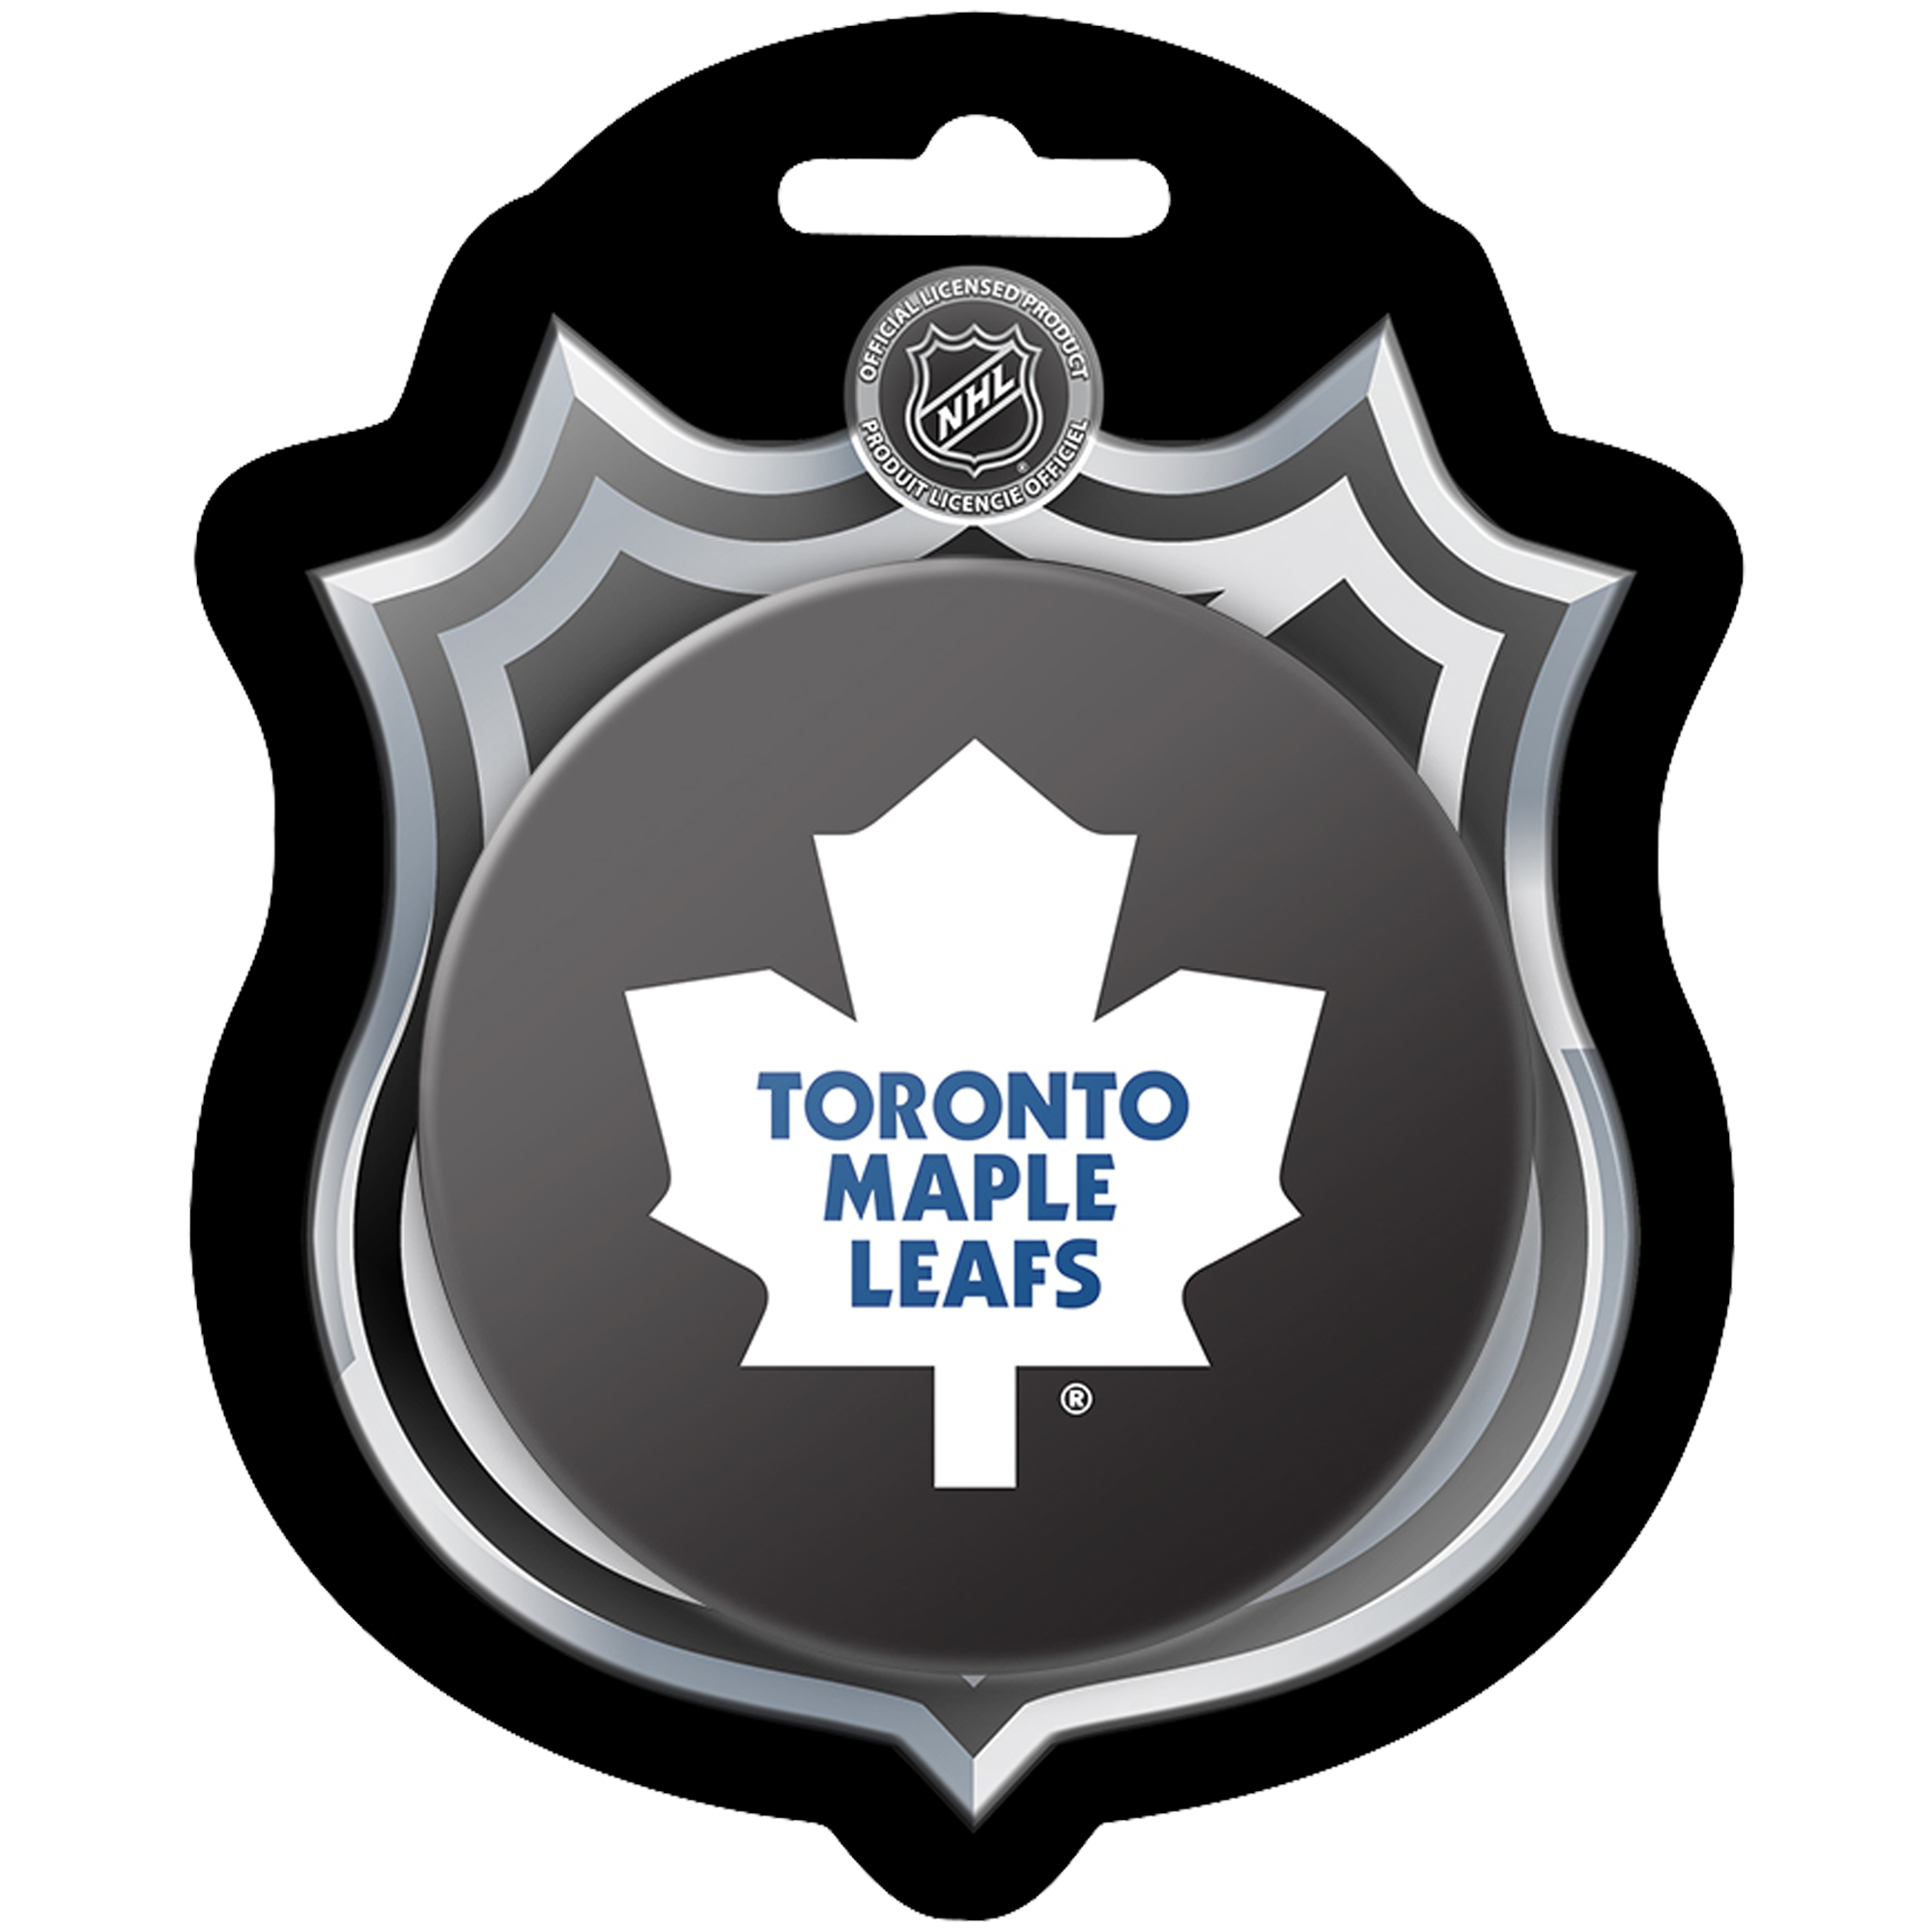 Toronto Maple Leafs Sher-Wood Hockey Puck - No Size